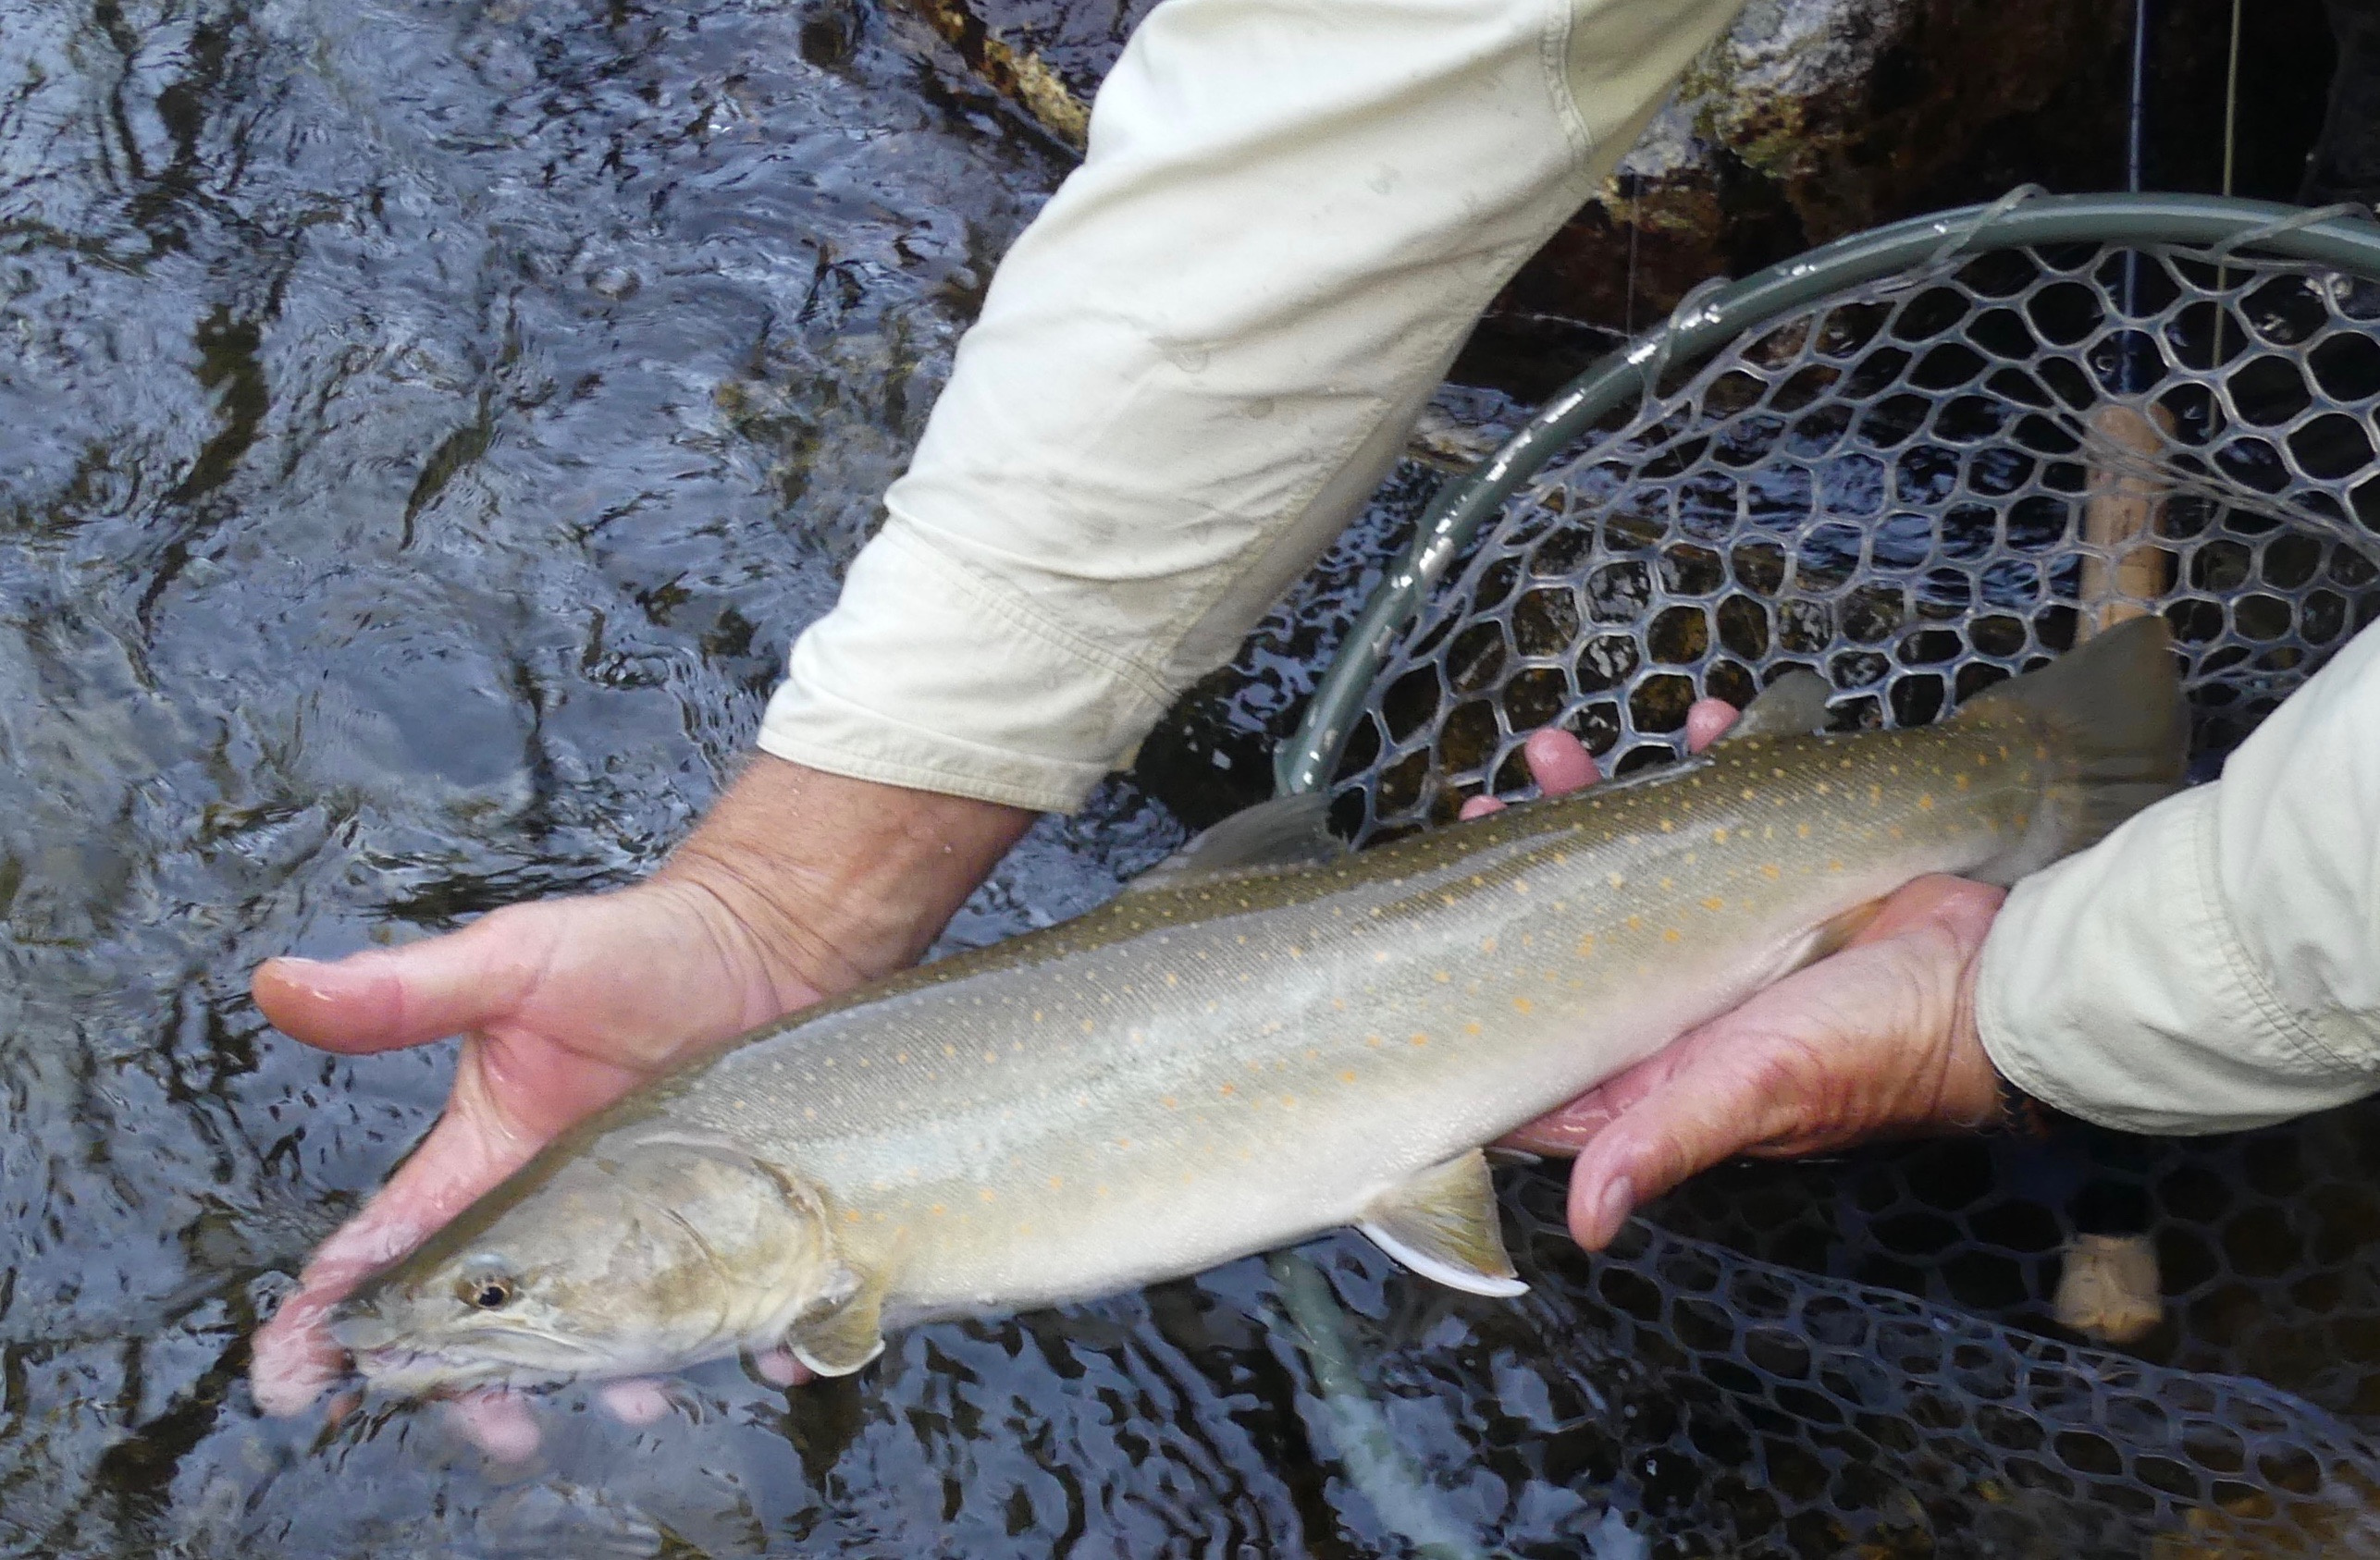 Casting for the bulls: fishing for Idaho's bull trout